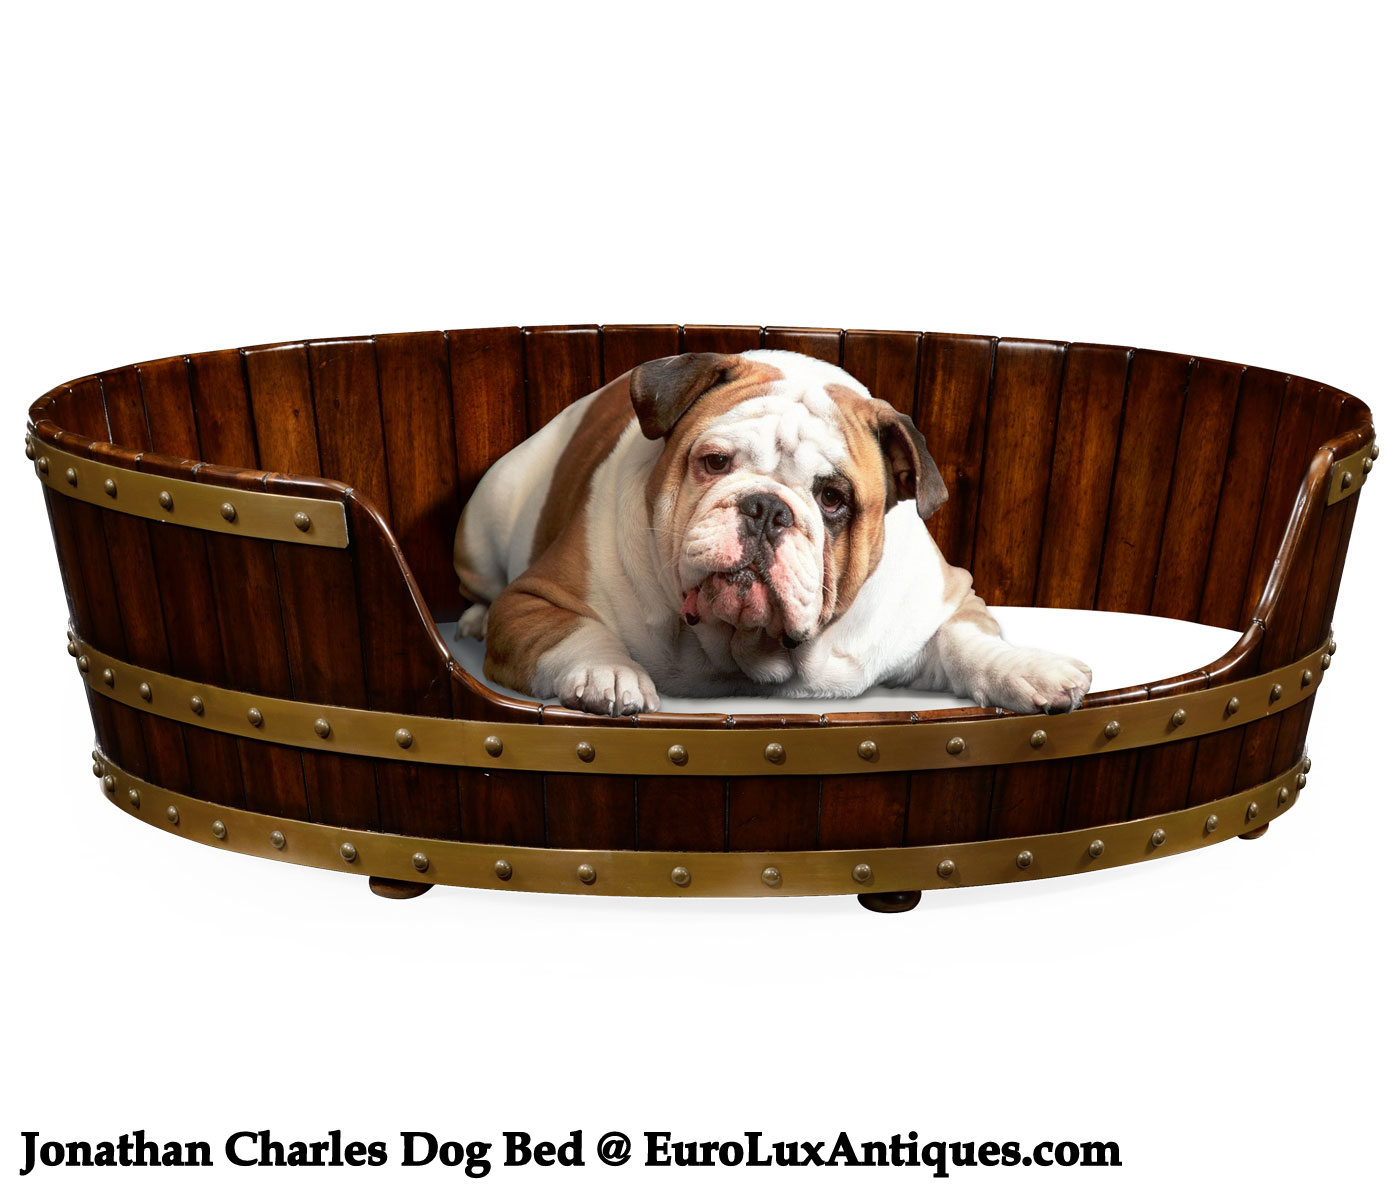 Jonathan Charles dog bed